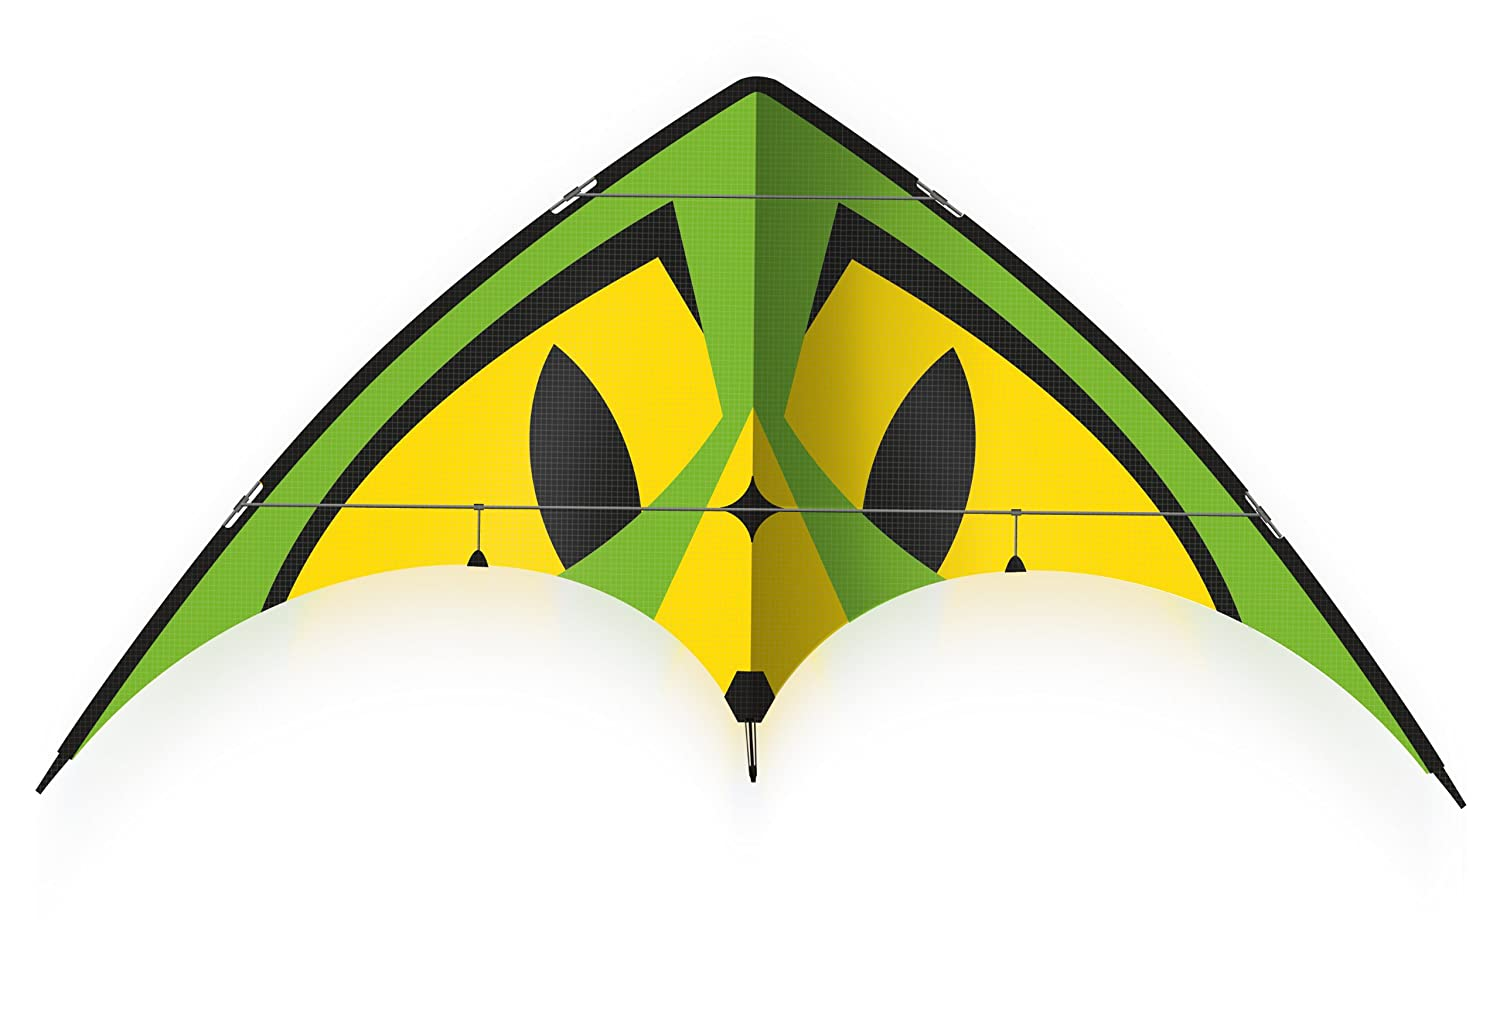 Paul Guenther 1089 mostro di kite loop di 160 x 80 cm Guenther - 1089